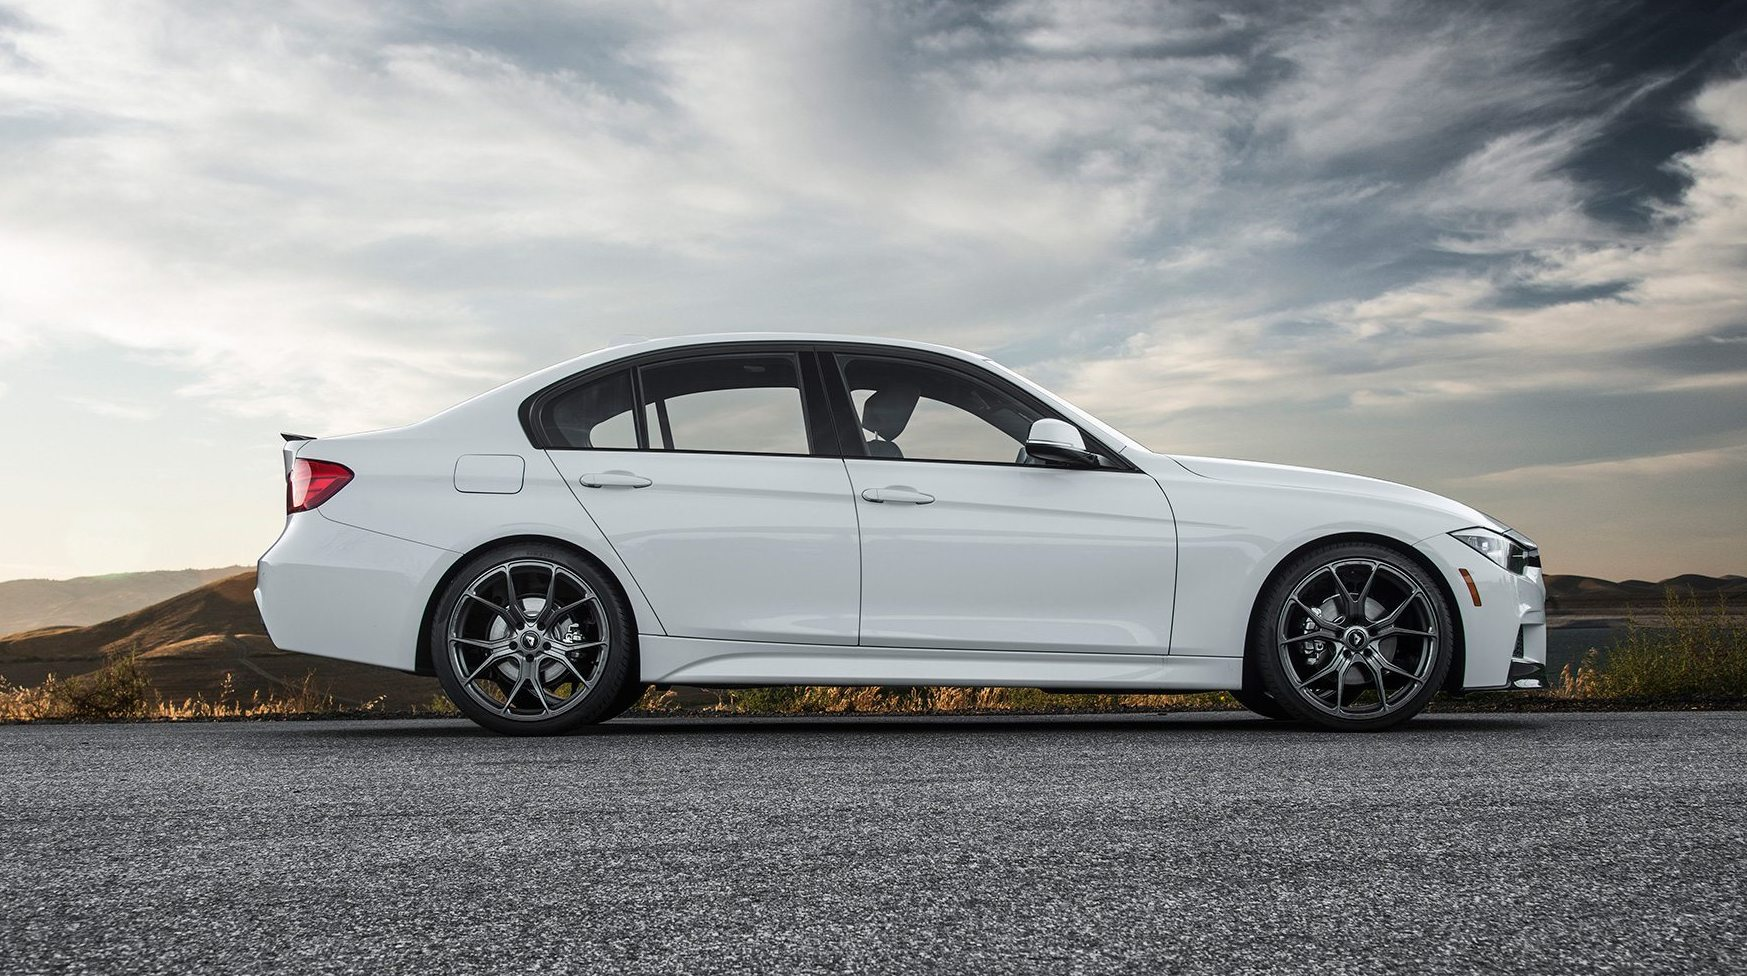 bmw-f30-on-v-ff-103-flow-forged-wheels_16453891140_o.jpg